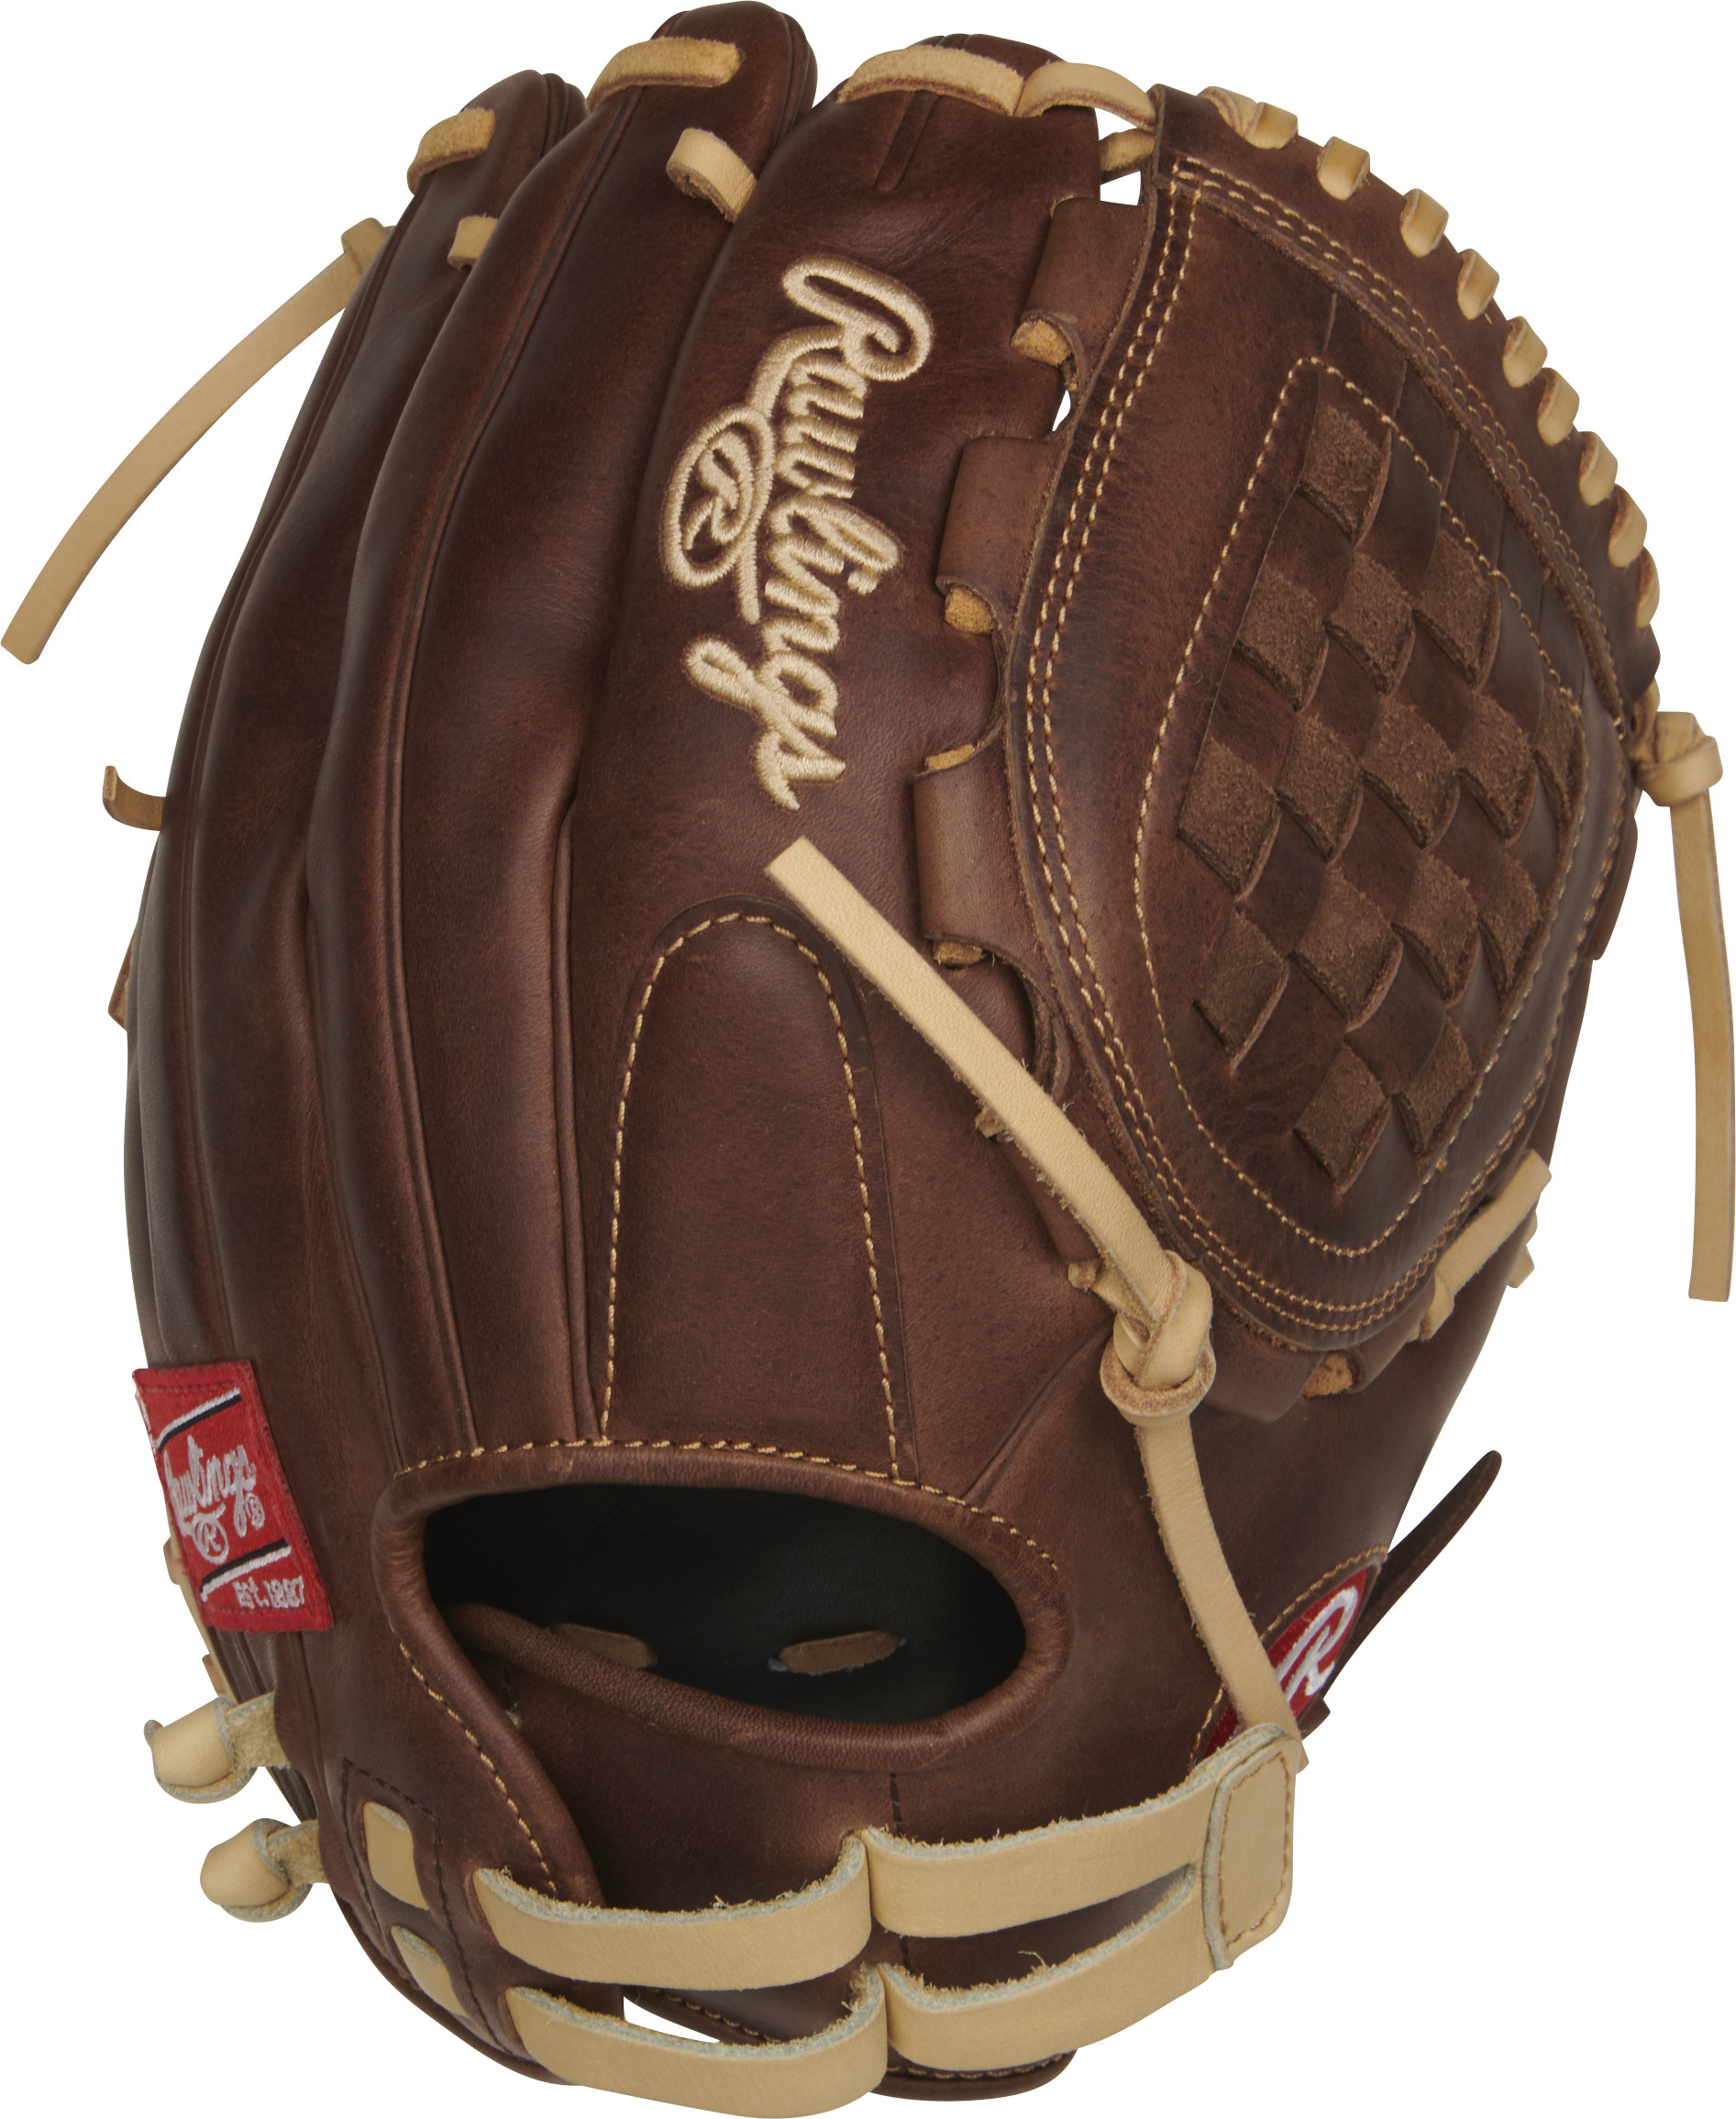 http://www.bestbatdeals.com/images/gloves/rawlings/PRO120SB-3SL-2.jpg